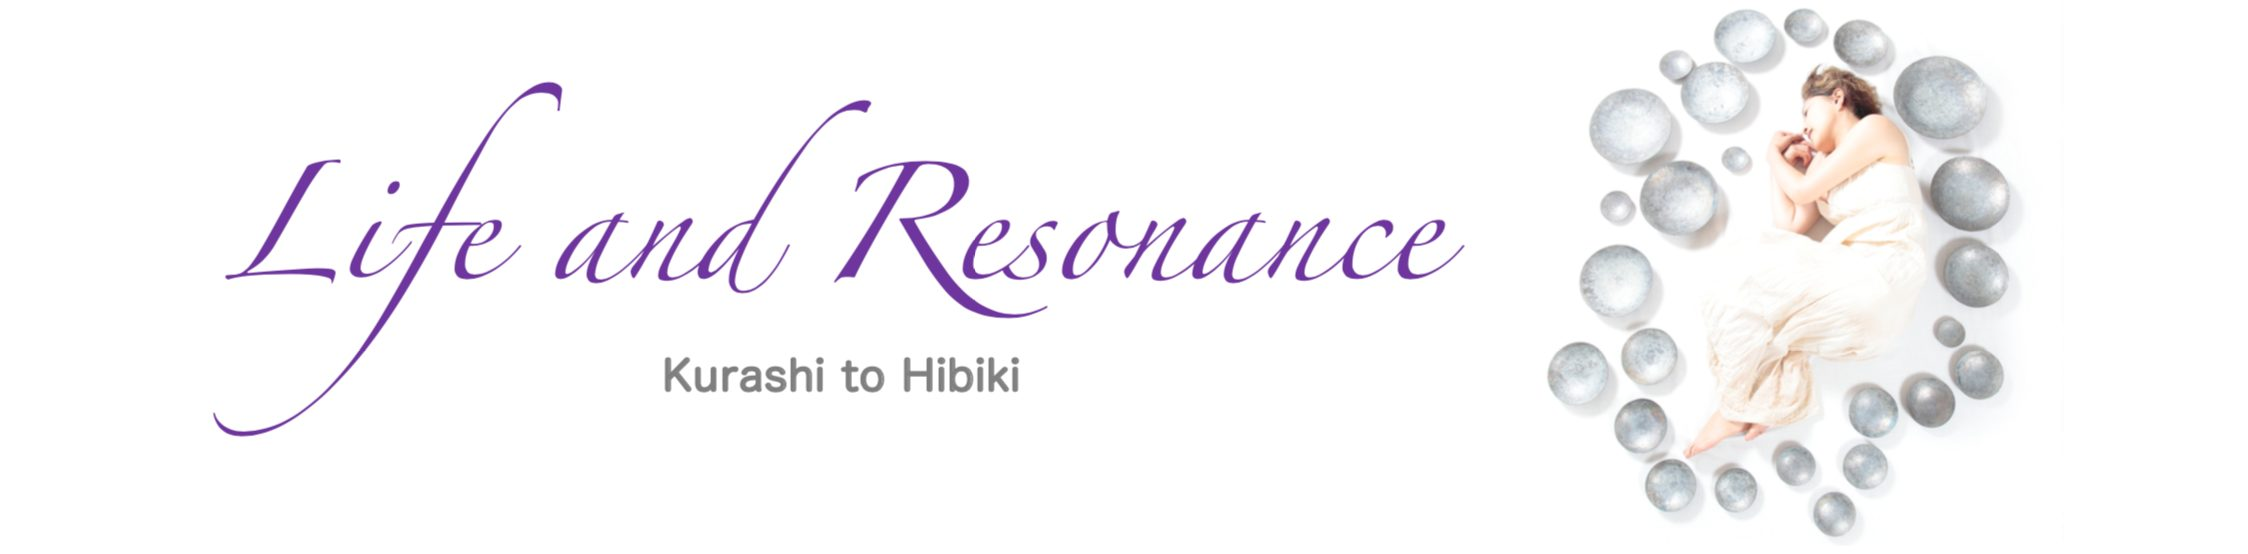 LIFE and RESONANCE